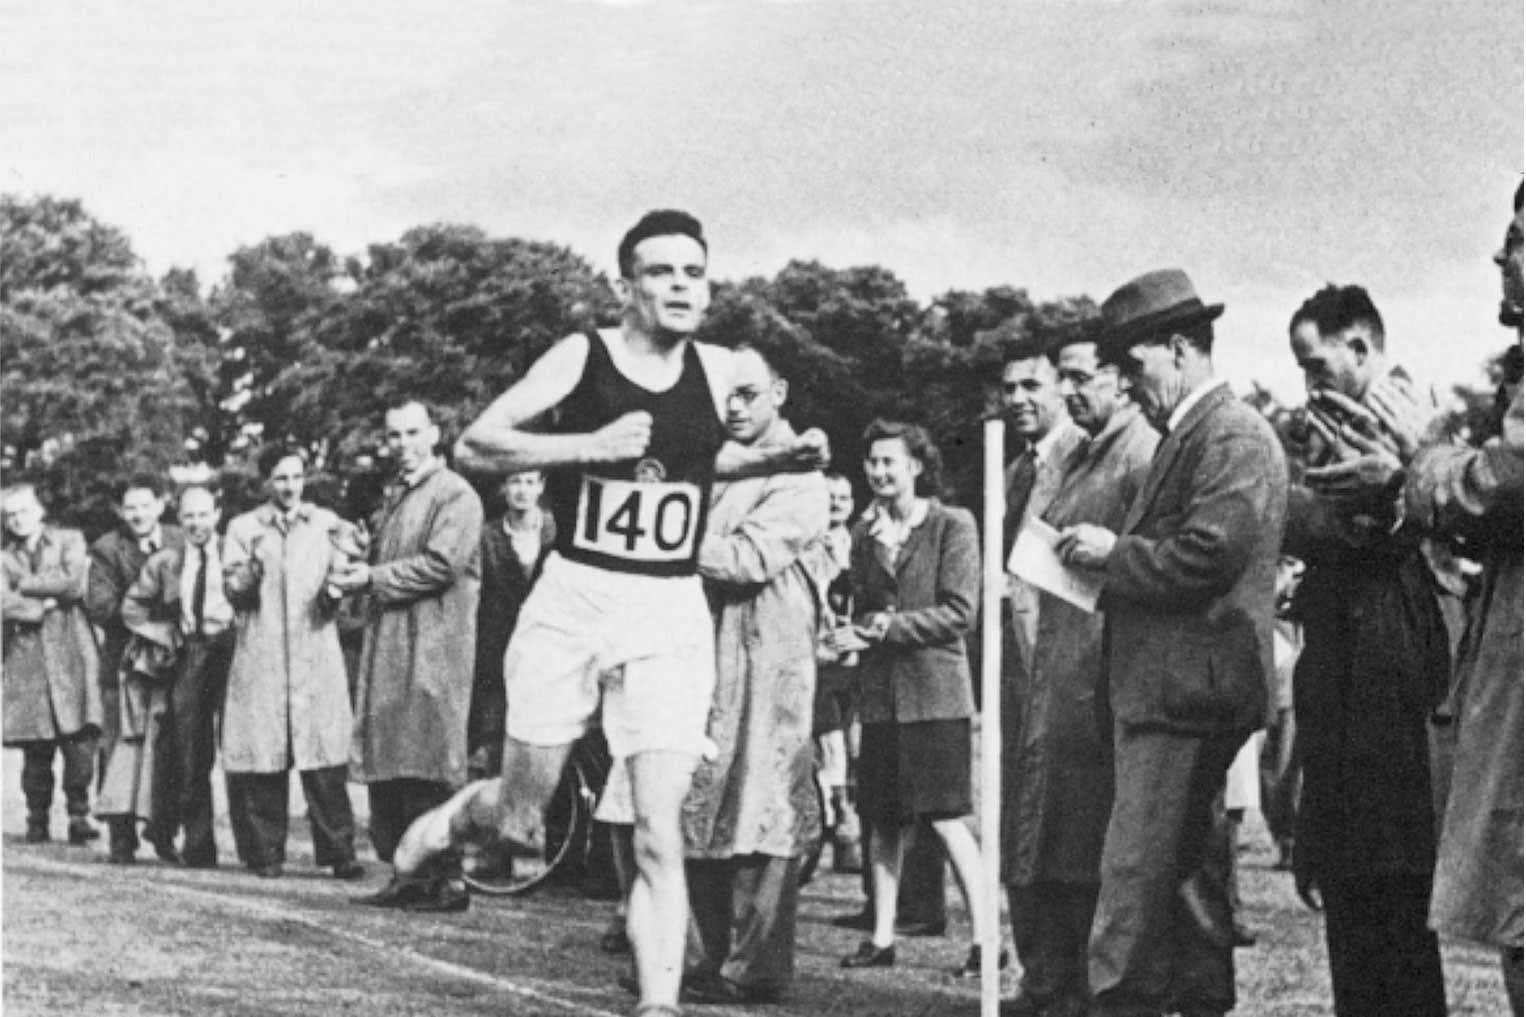 Alan Turing running in front of a crowd, wearing a paper racing number 140